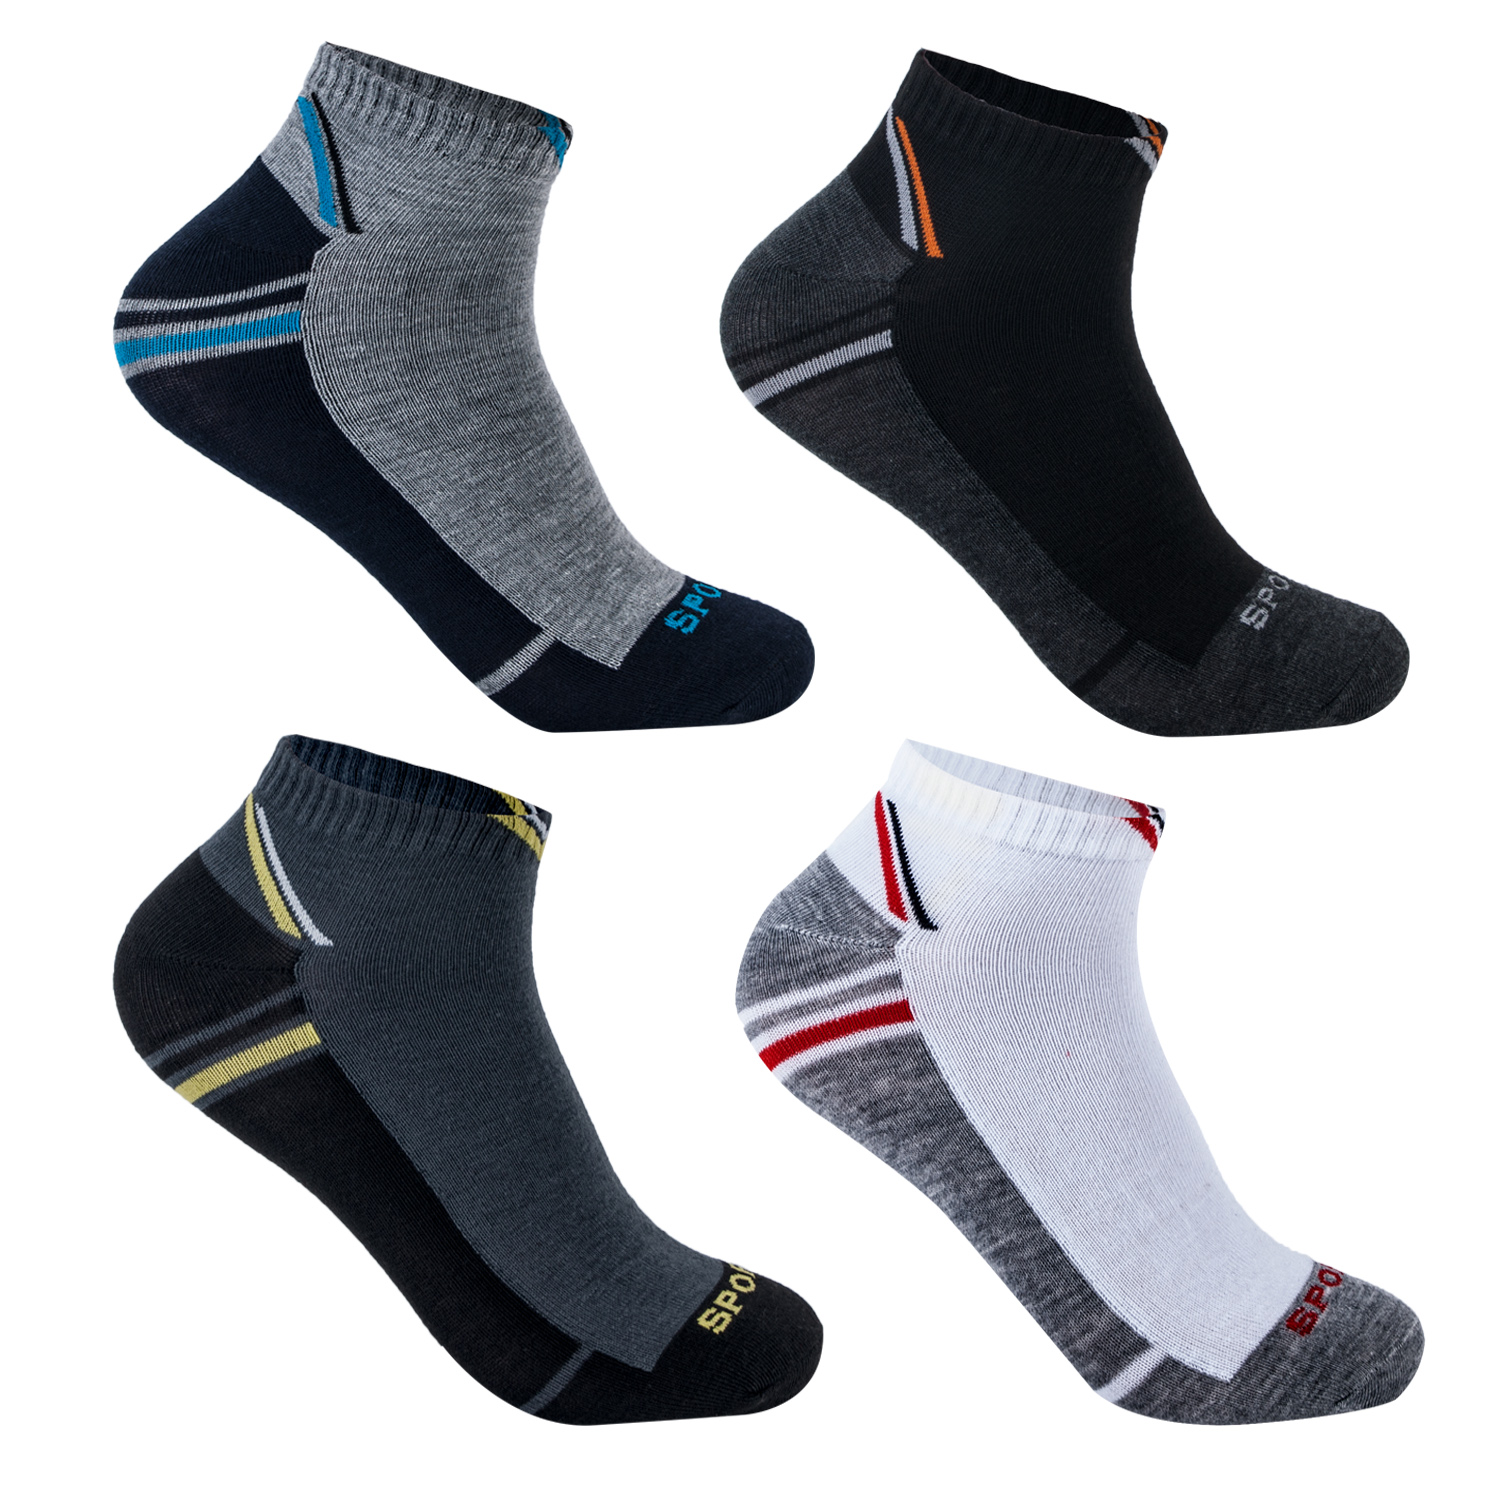 12 24 paar damen herren sneaker socken f sslinge sportsocken freizeit kurzsocken ebay. Black Bedroom Furniture Sets. Home Design Ideas